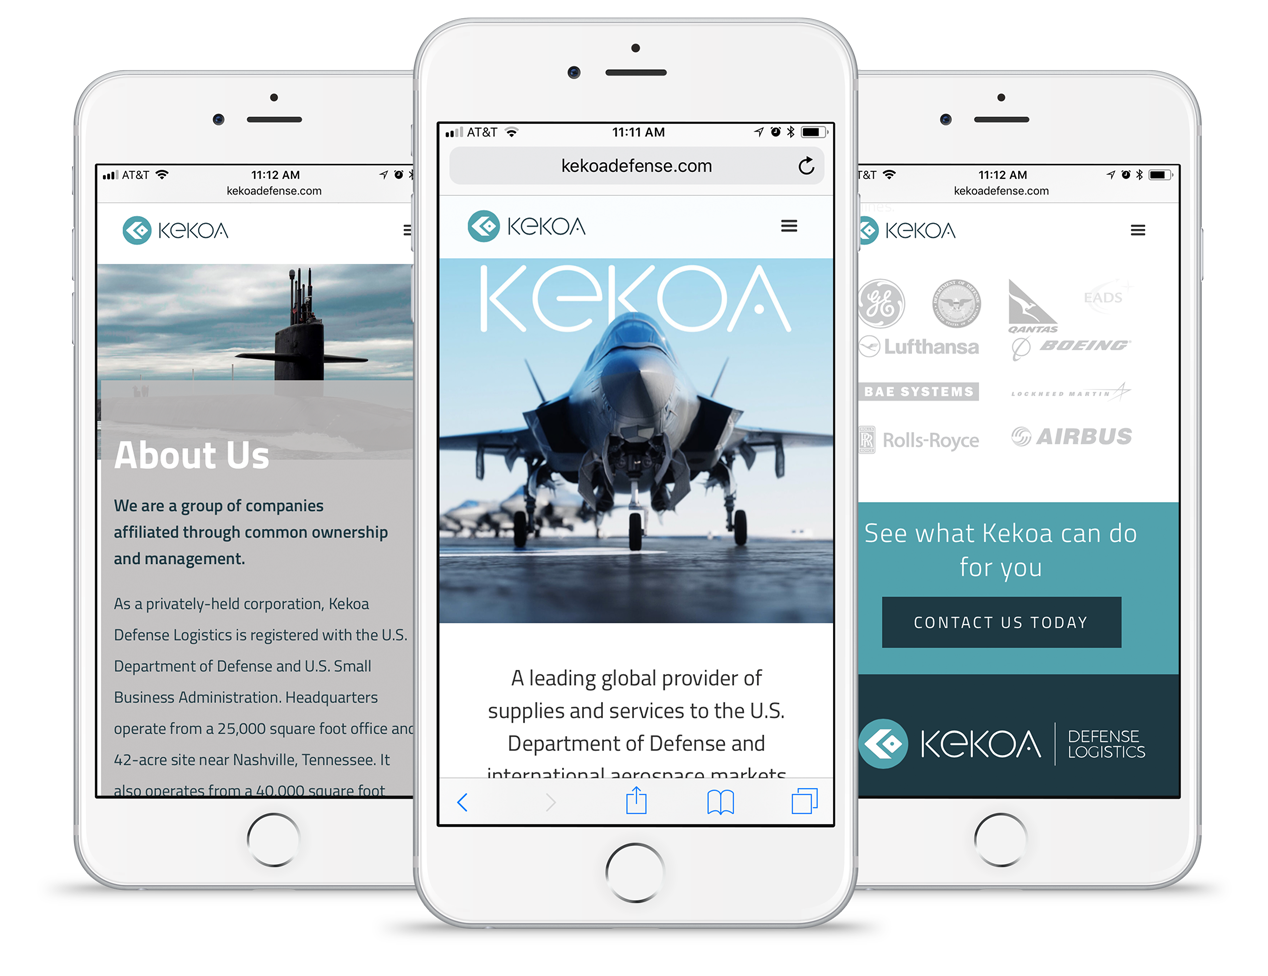 Although many studies and supporting data show that mobile is the leading platform for websites, it was important for us to focus on mobile and desktop equally as Kekoa's target audience operates in both environments.